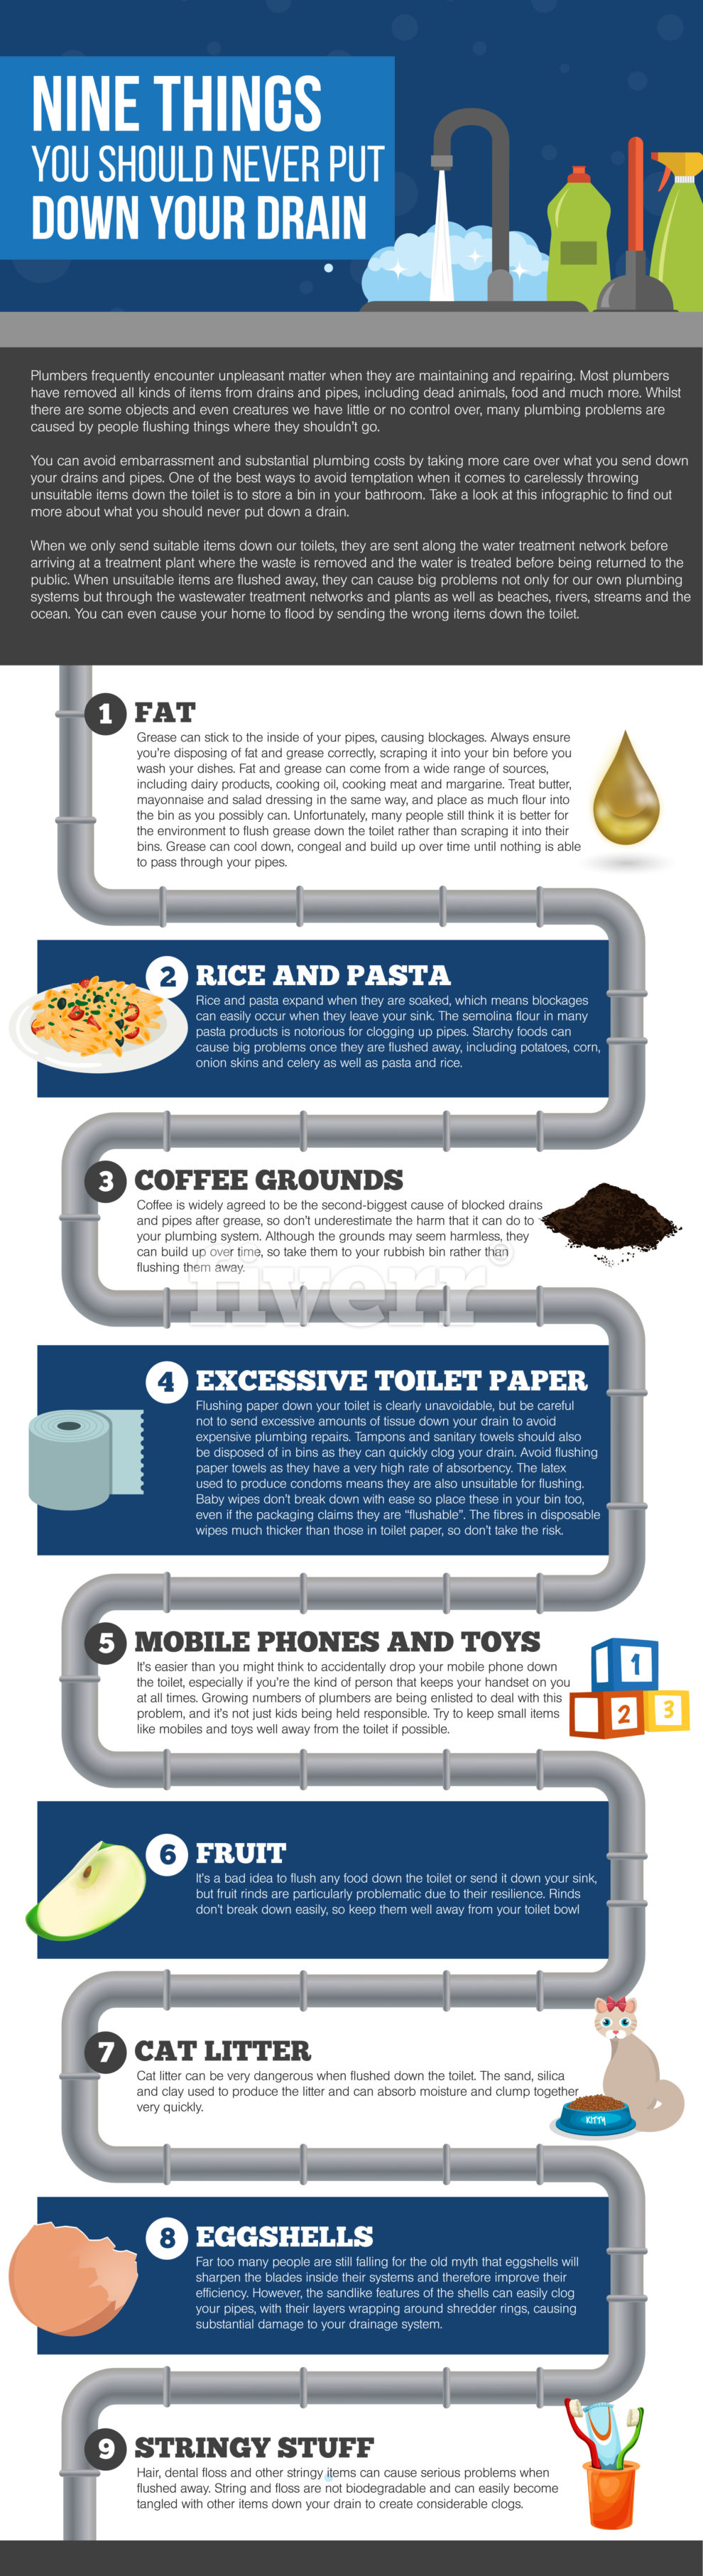 9 Things You Should Never Put Down Your Drain